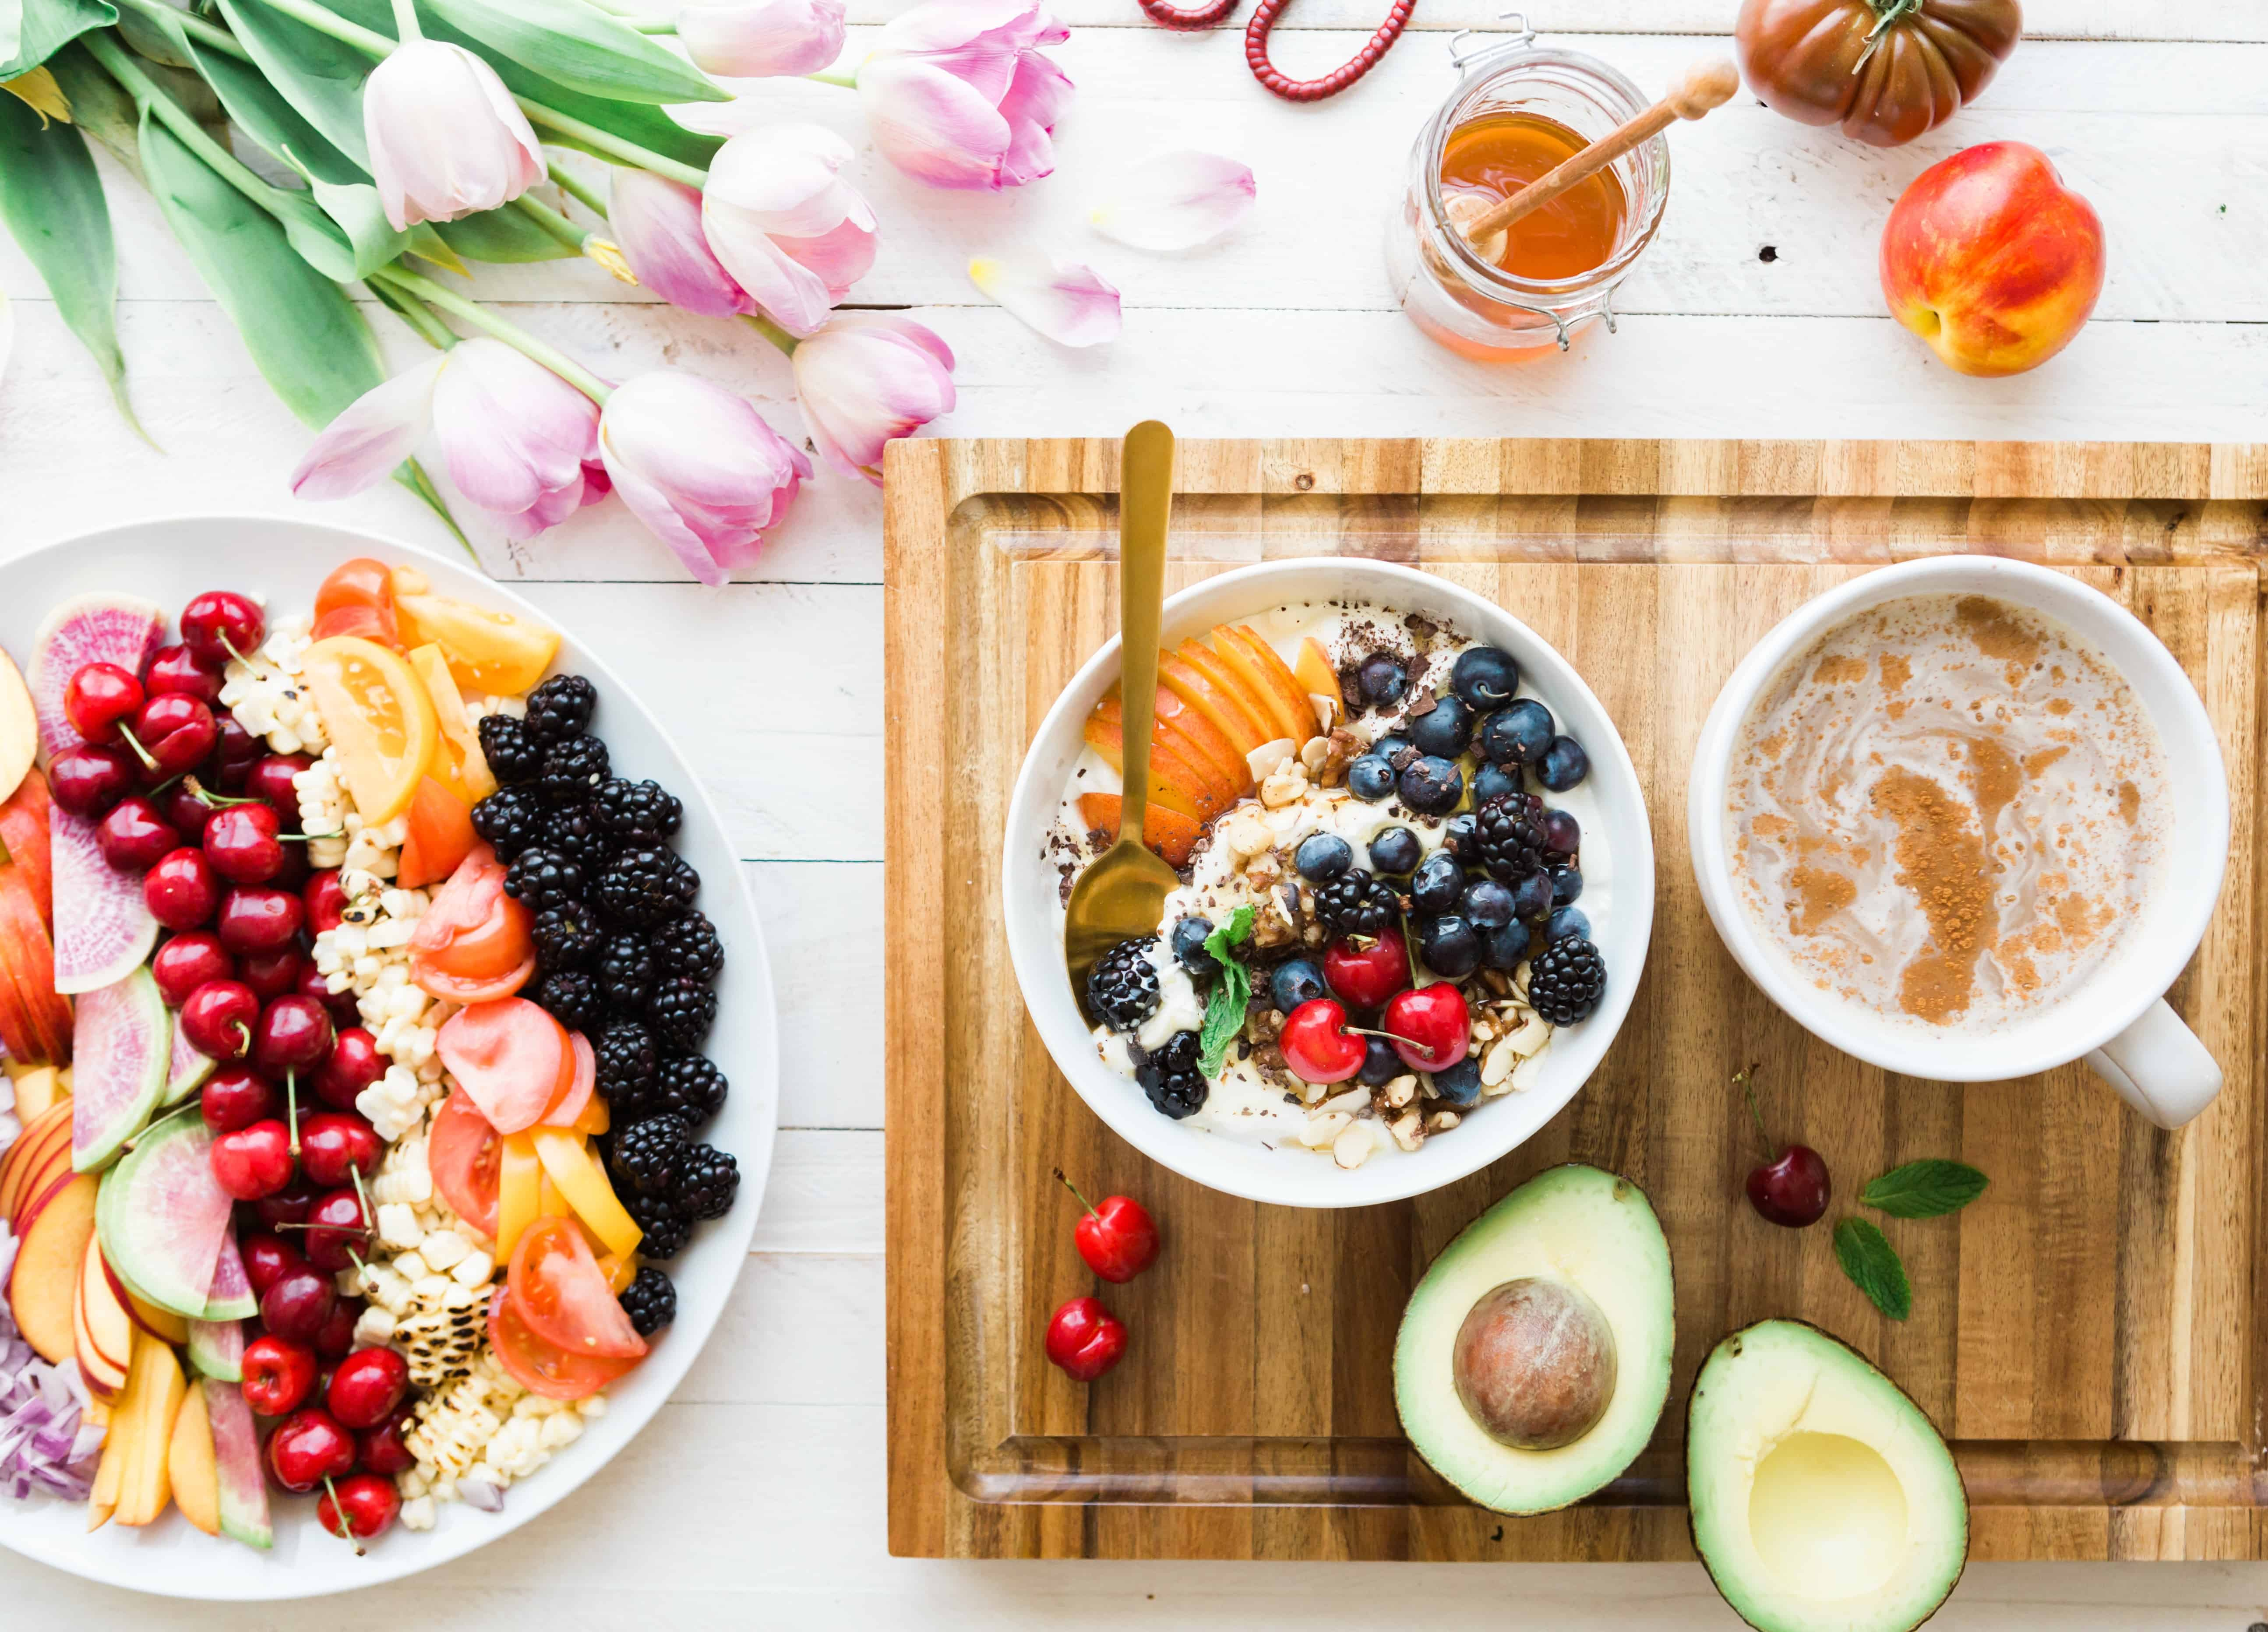 Ketogenic Diet For Weight Loss: Stay Smart; Stay Healthy